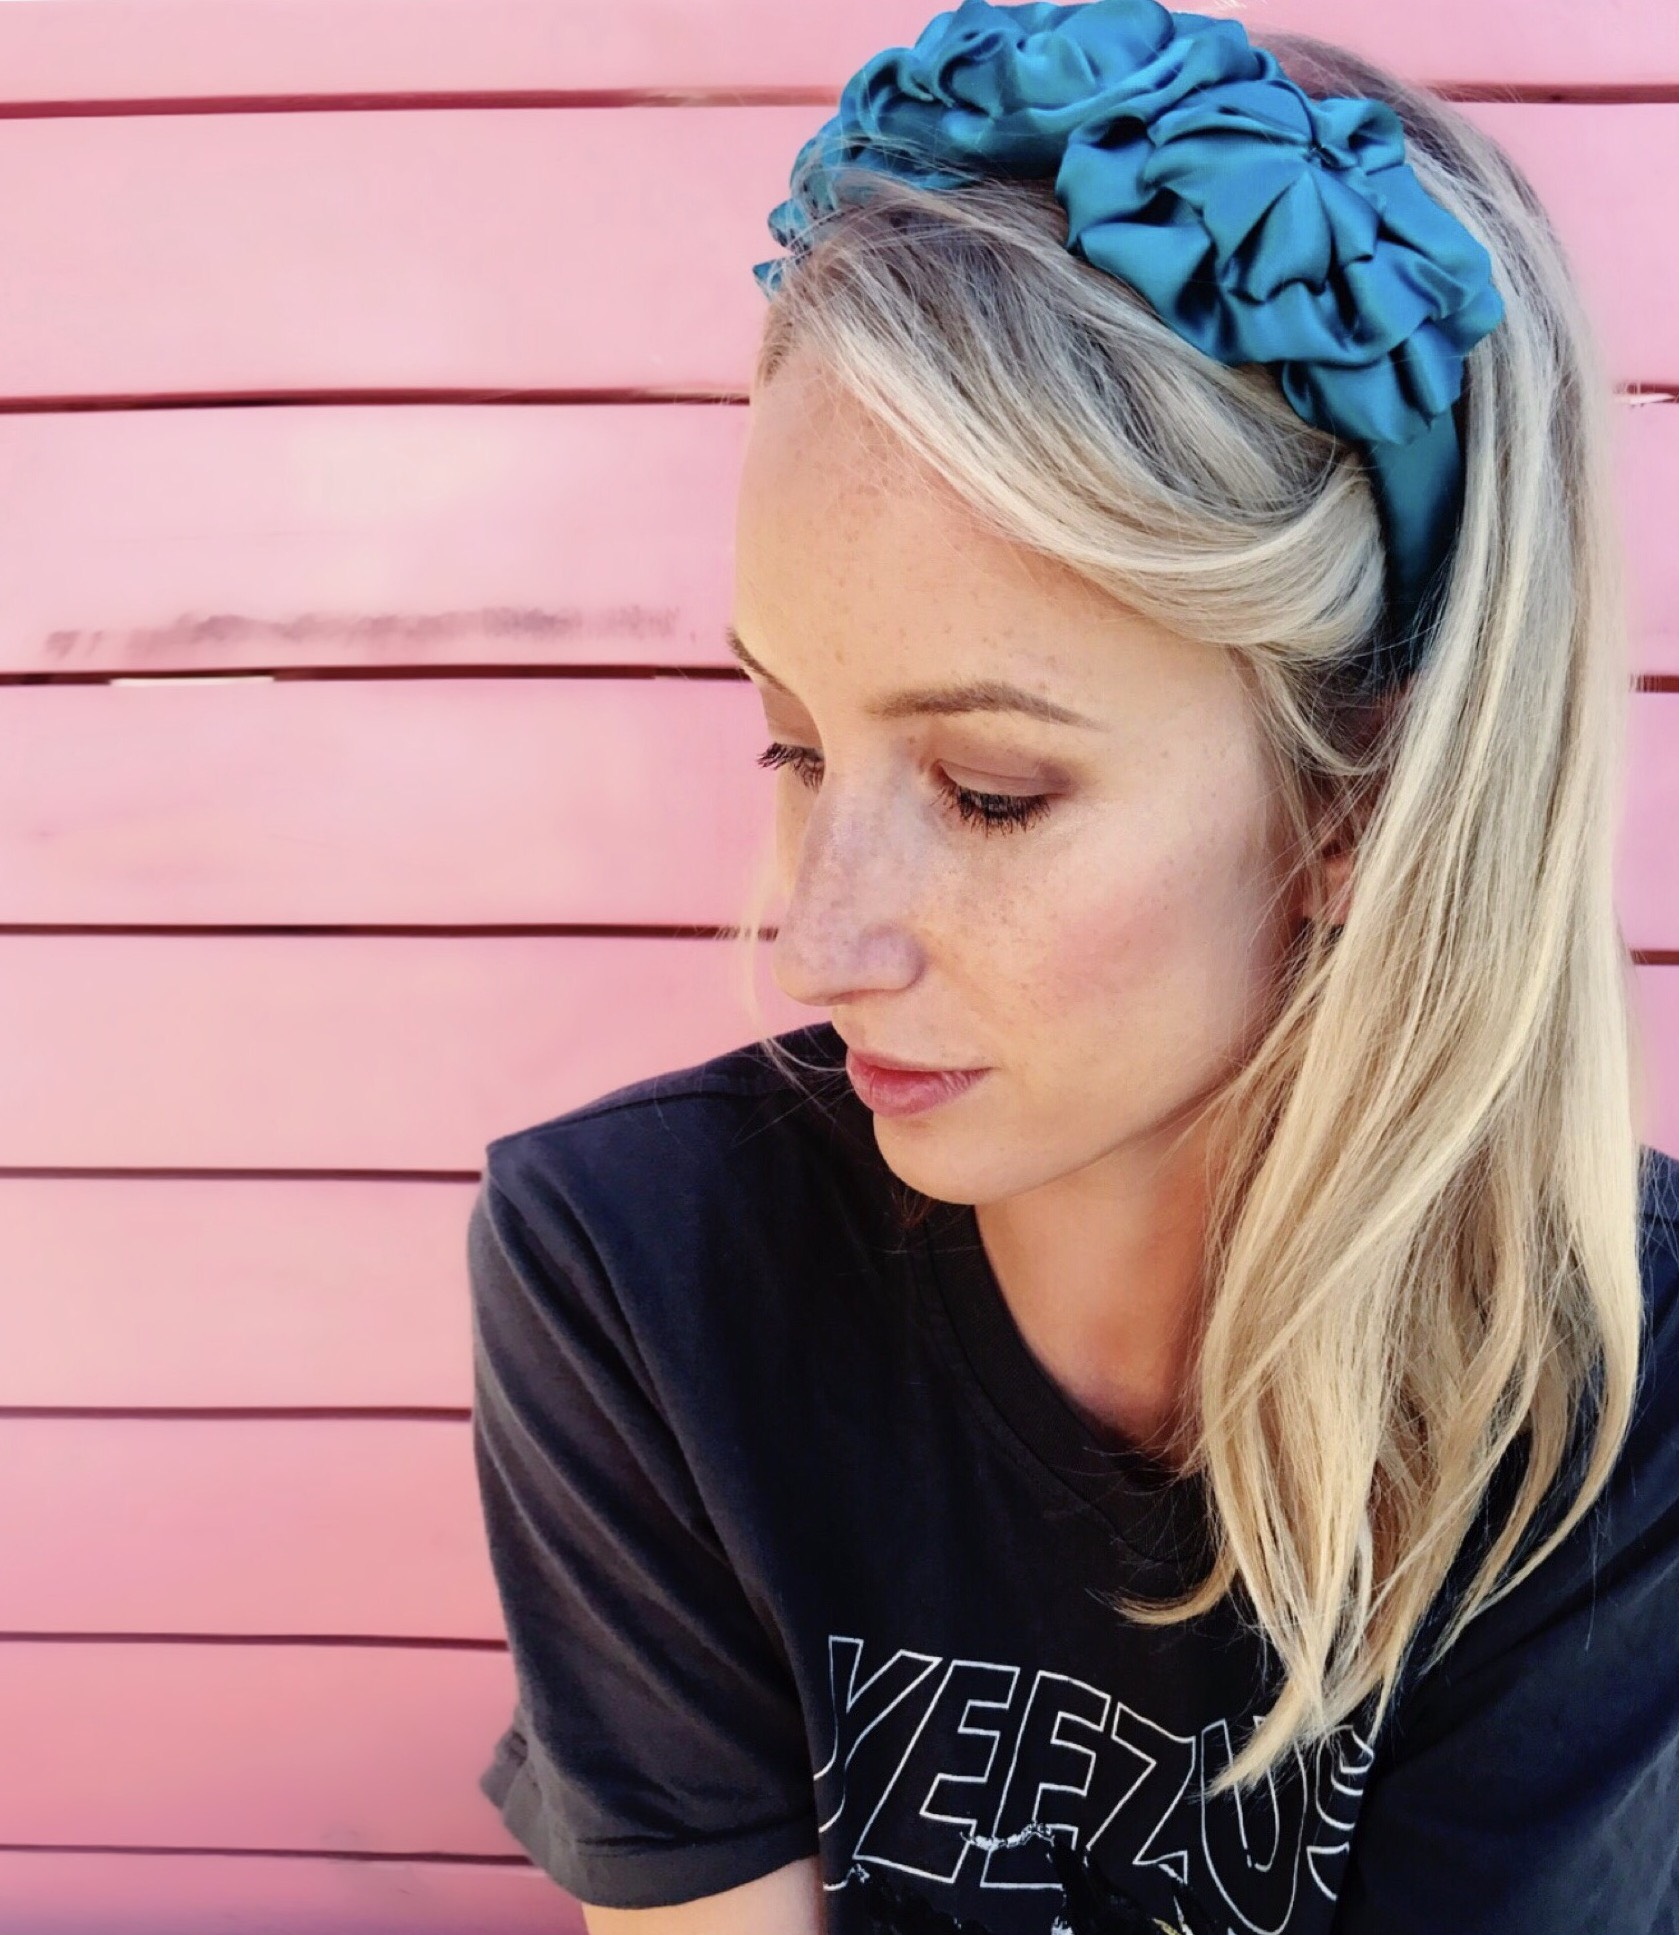 josefine thelin flowery di headband turkos.jpeg